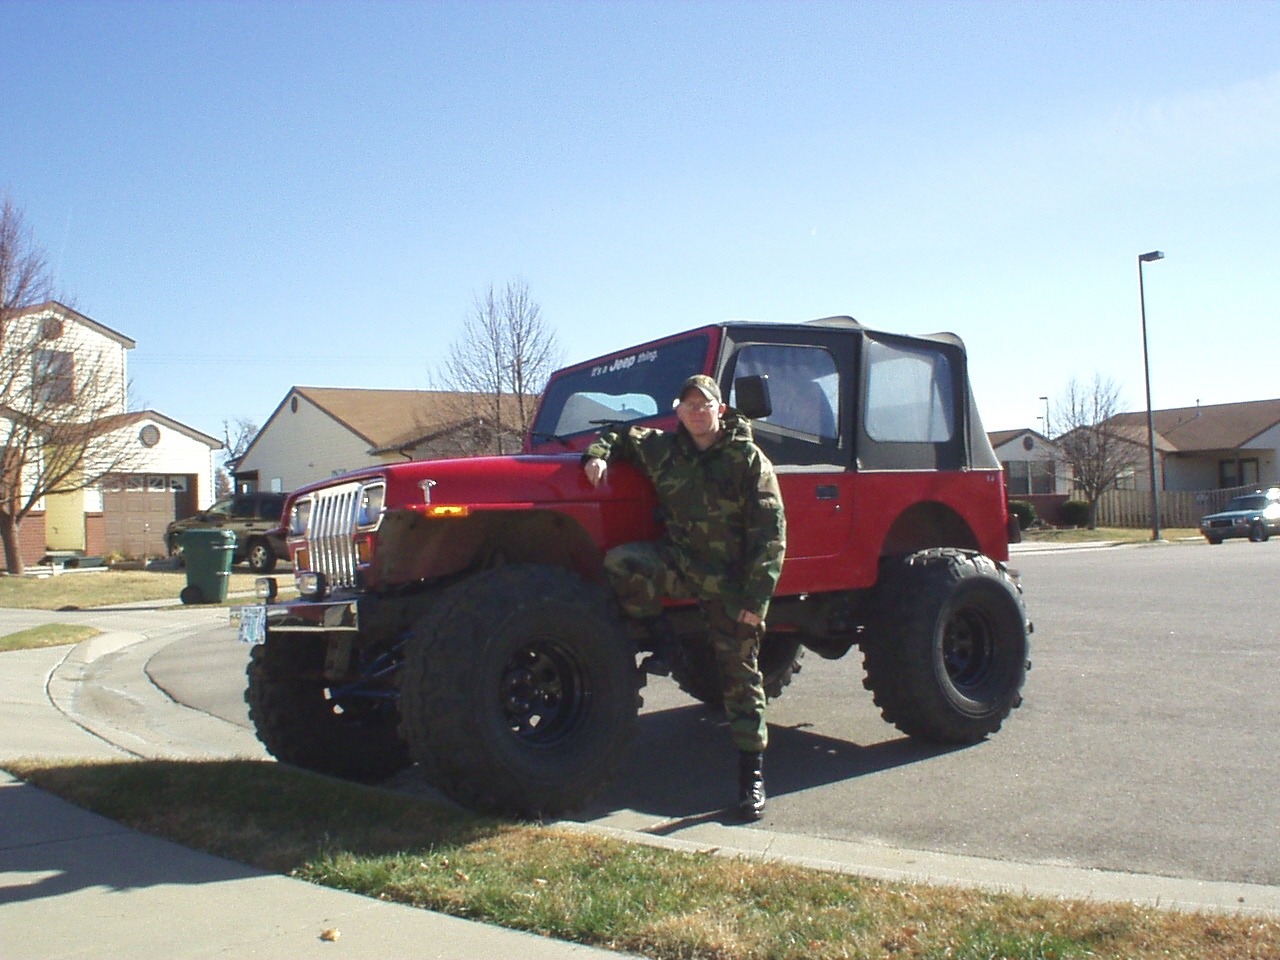 Old jeep old uniform